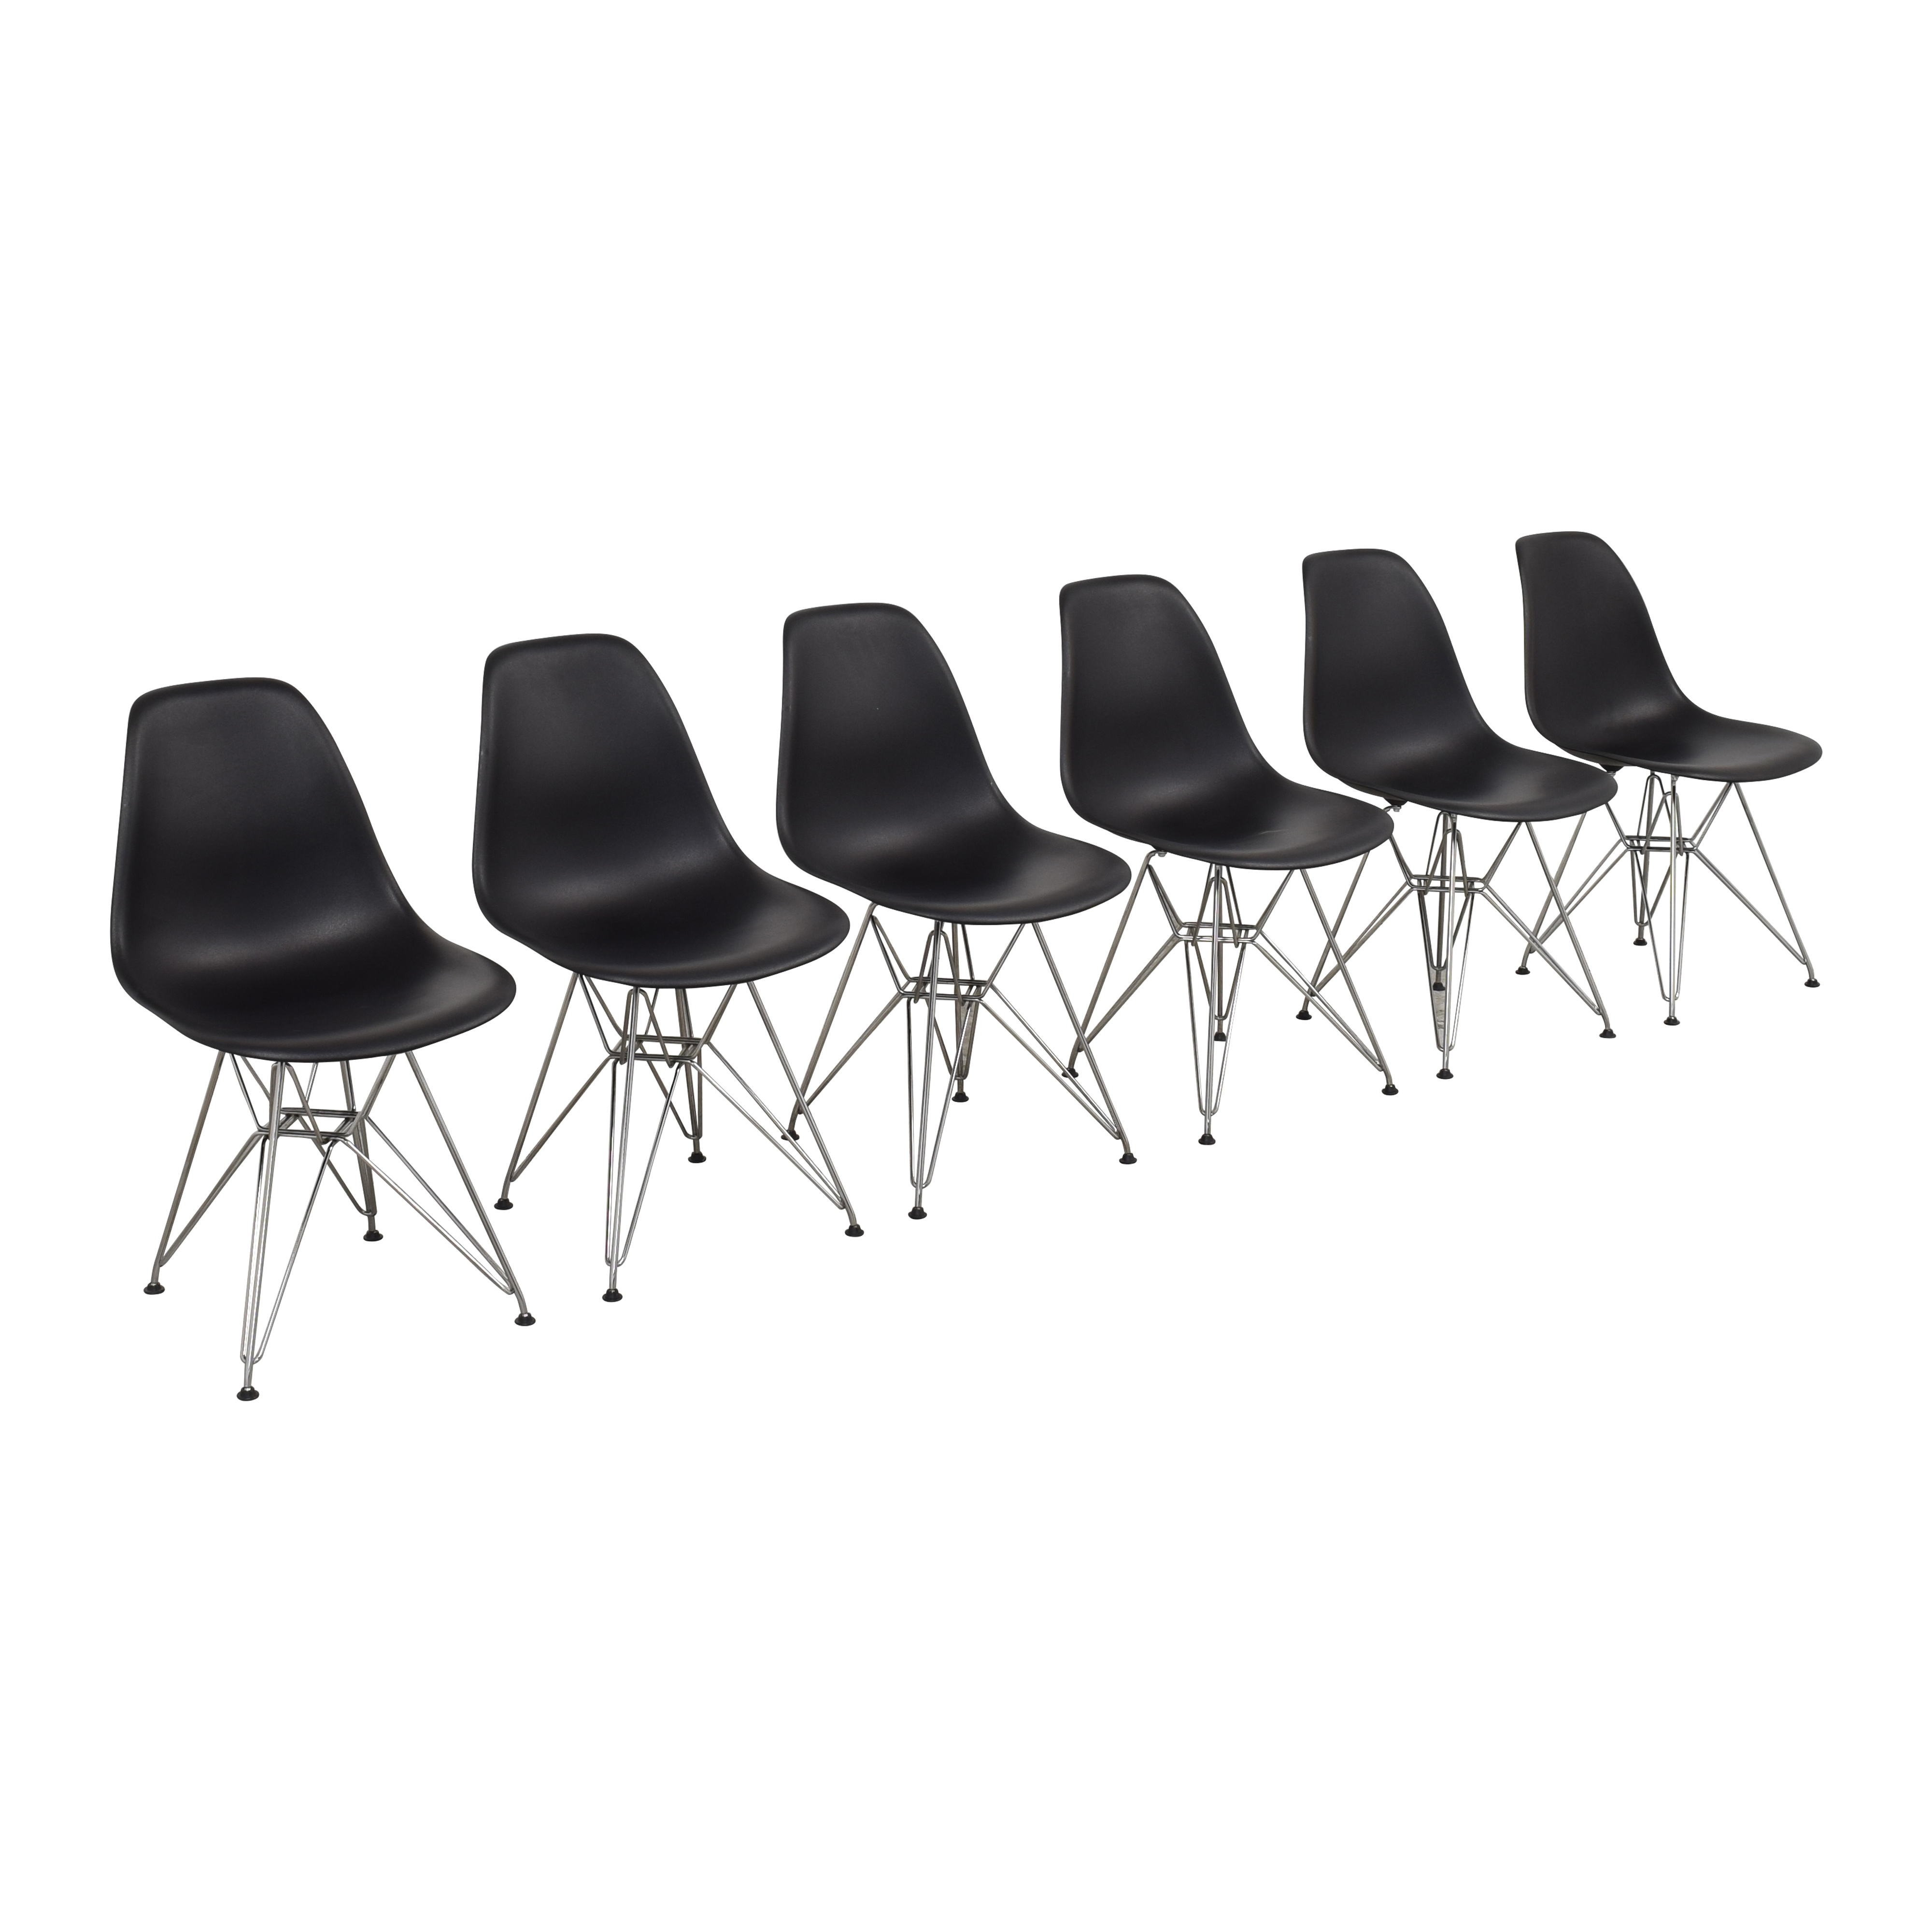 Herman Miller Herman Miller Eames Molded Plastic Wirebase Chairs for sale